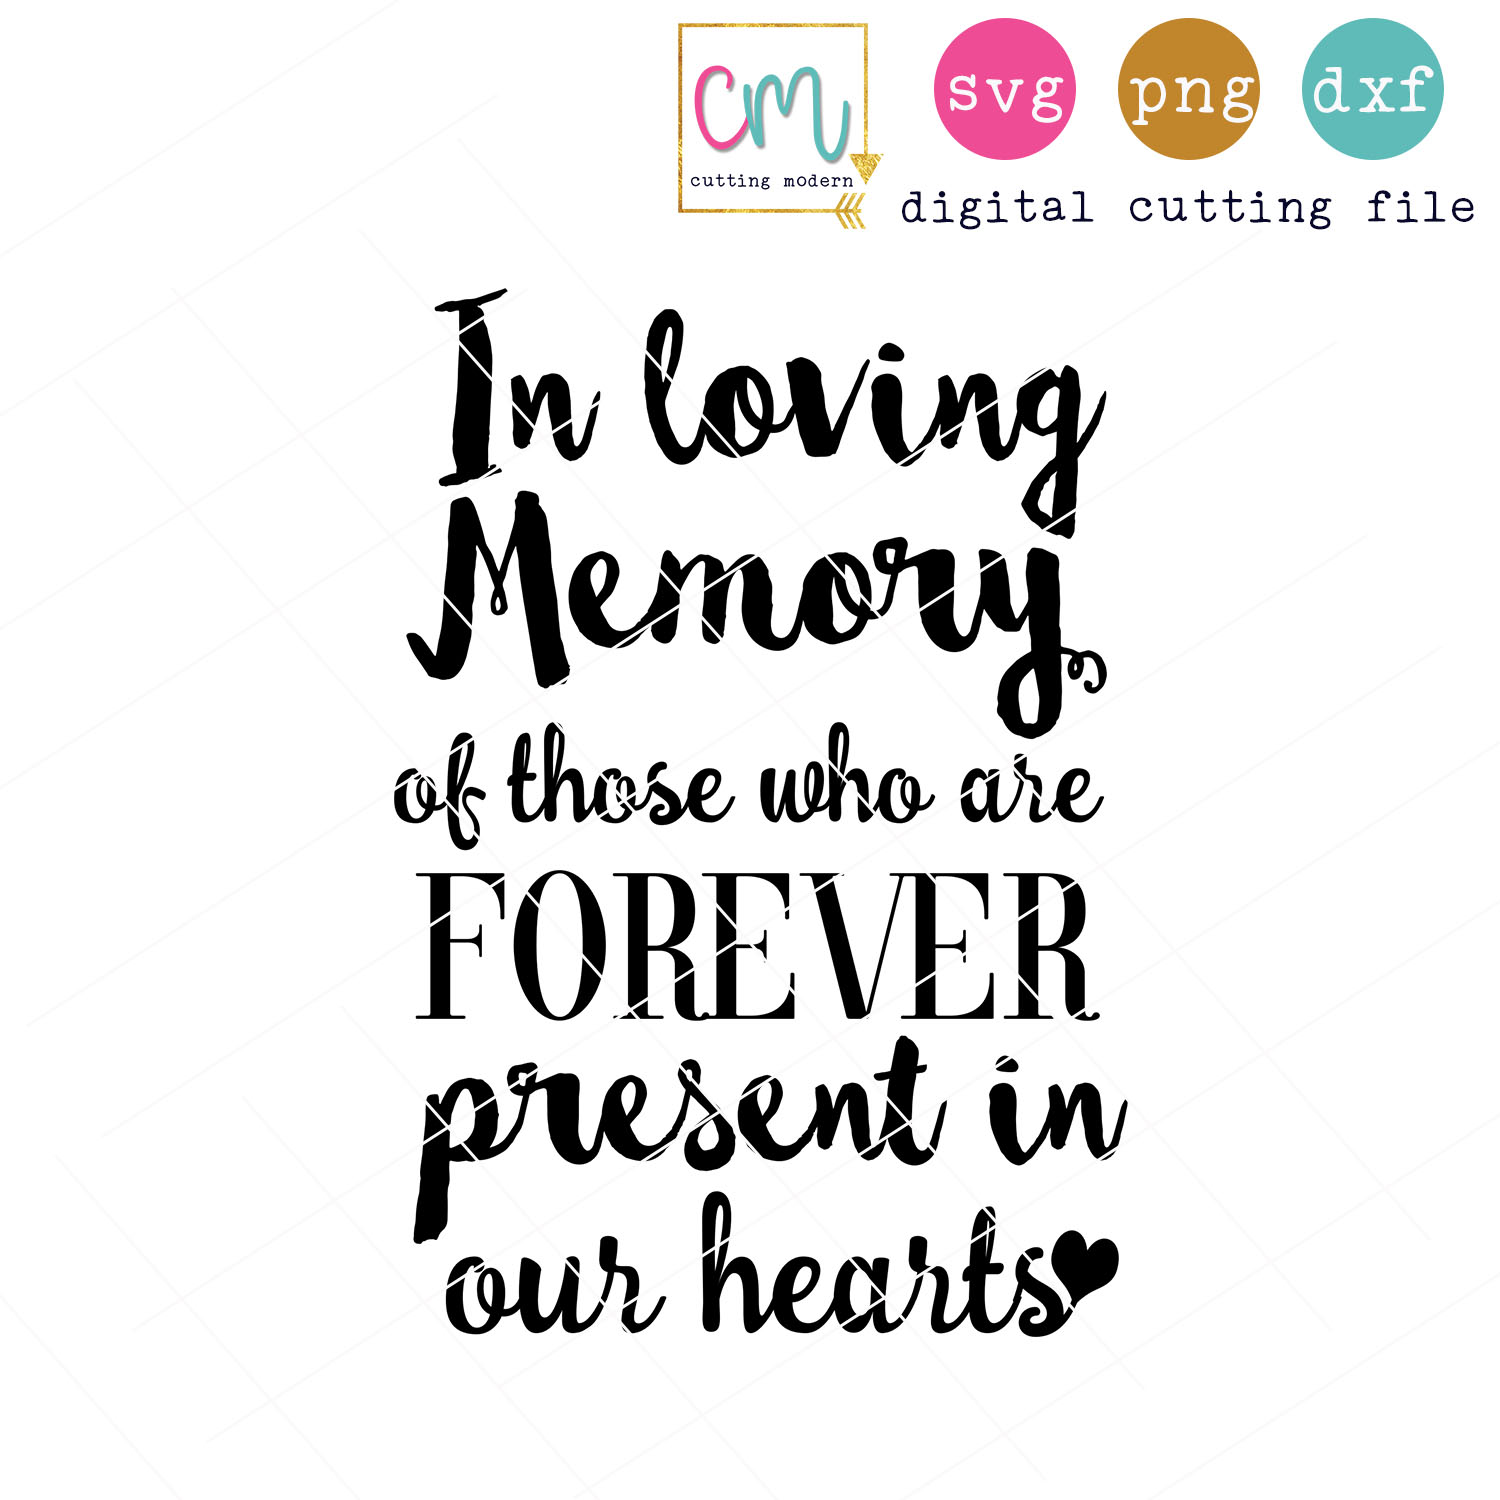 In Loving Memory Of Those Who Are Forever Present In Our Hearts.